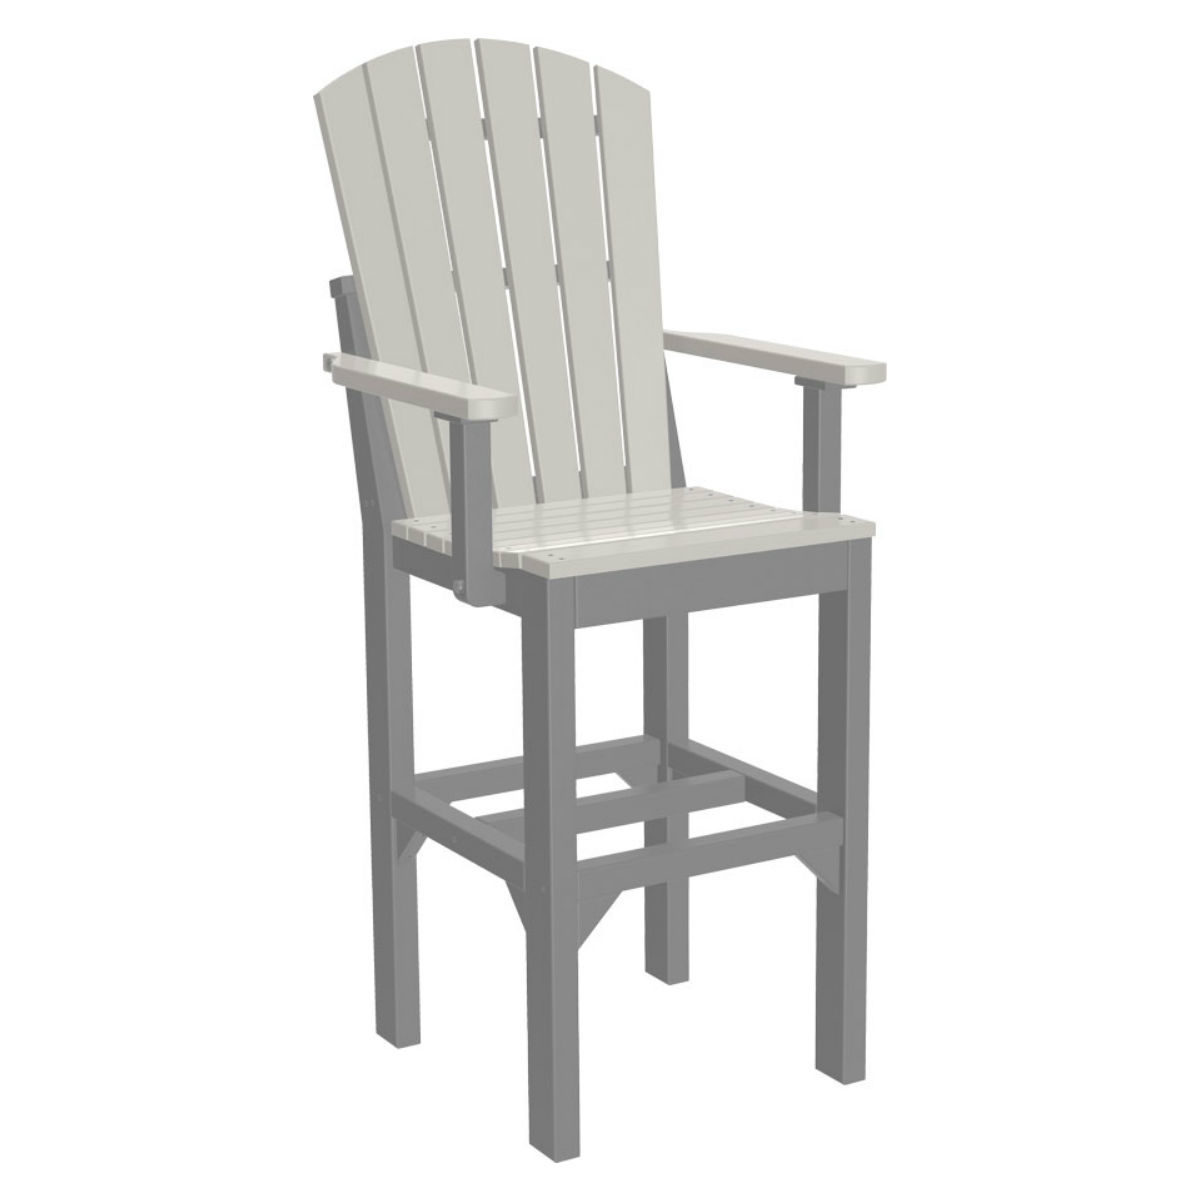 Adirondack Captain Bar Chair - Dove Grey & Slate